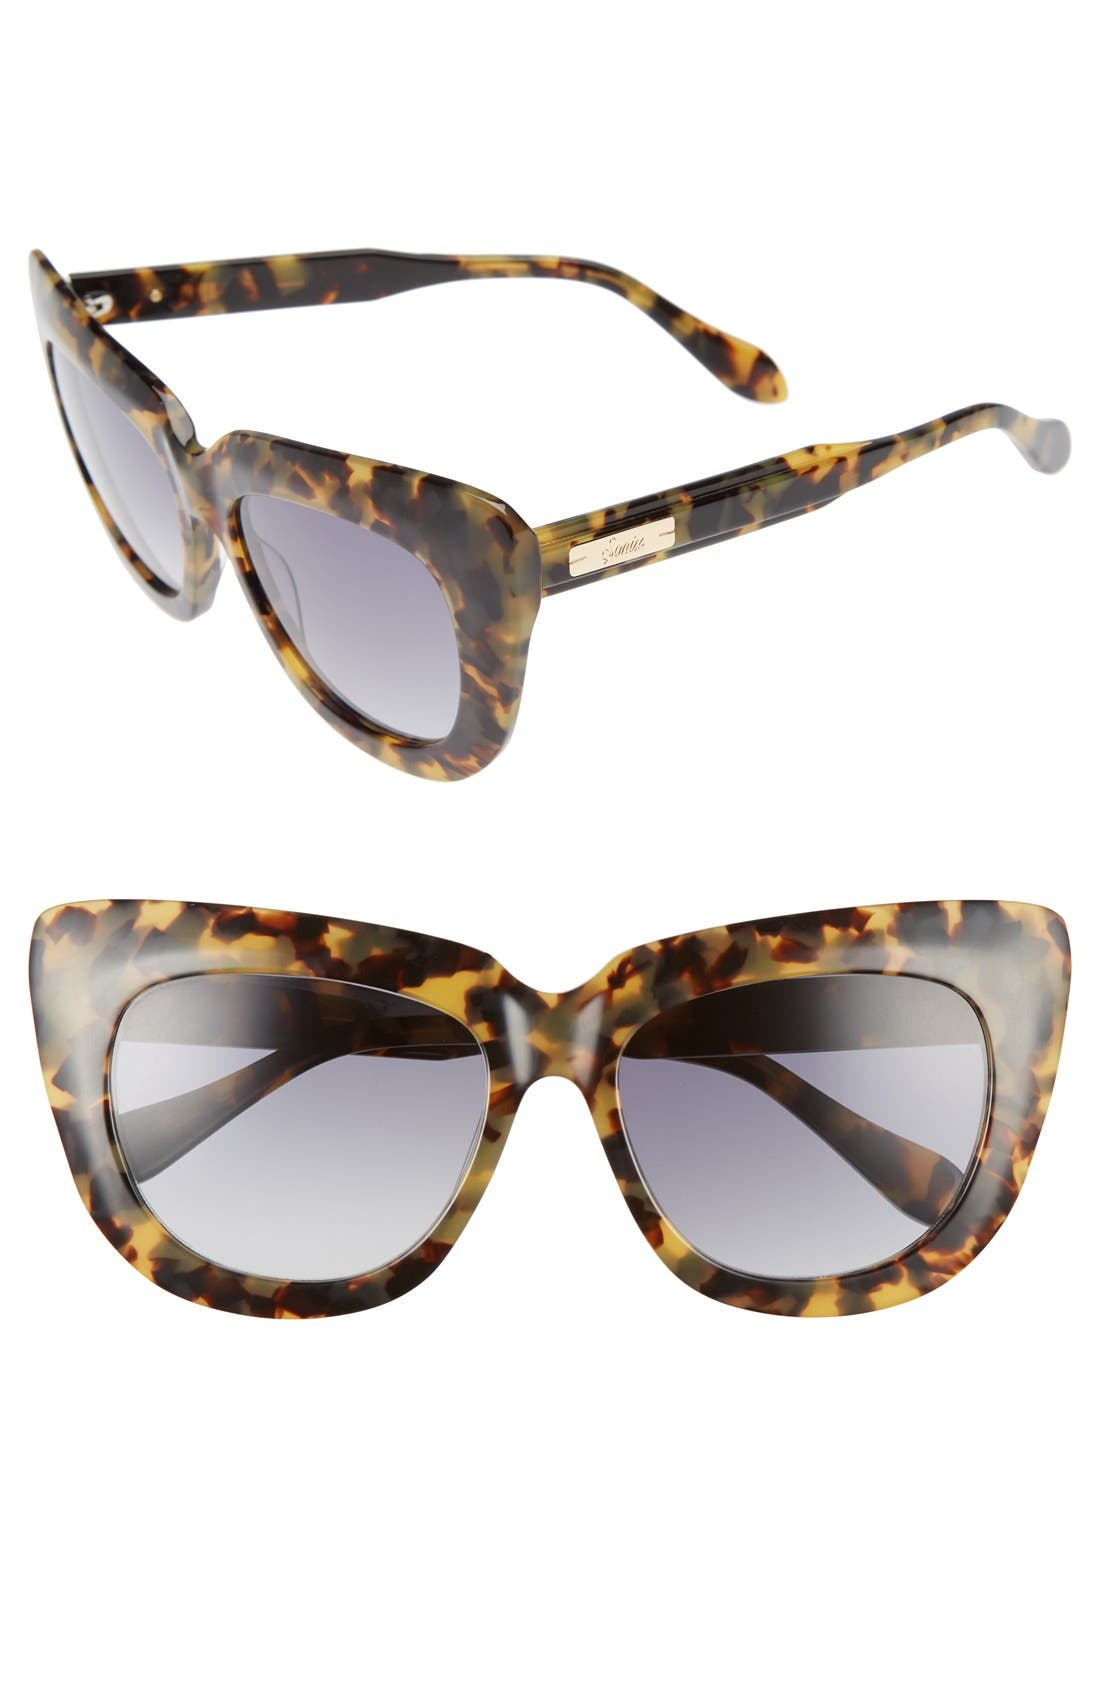 Main Image - Sonix Coco 55mm Gradient Cat Eye Sunglasses